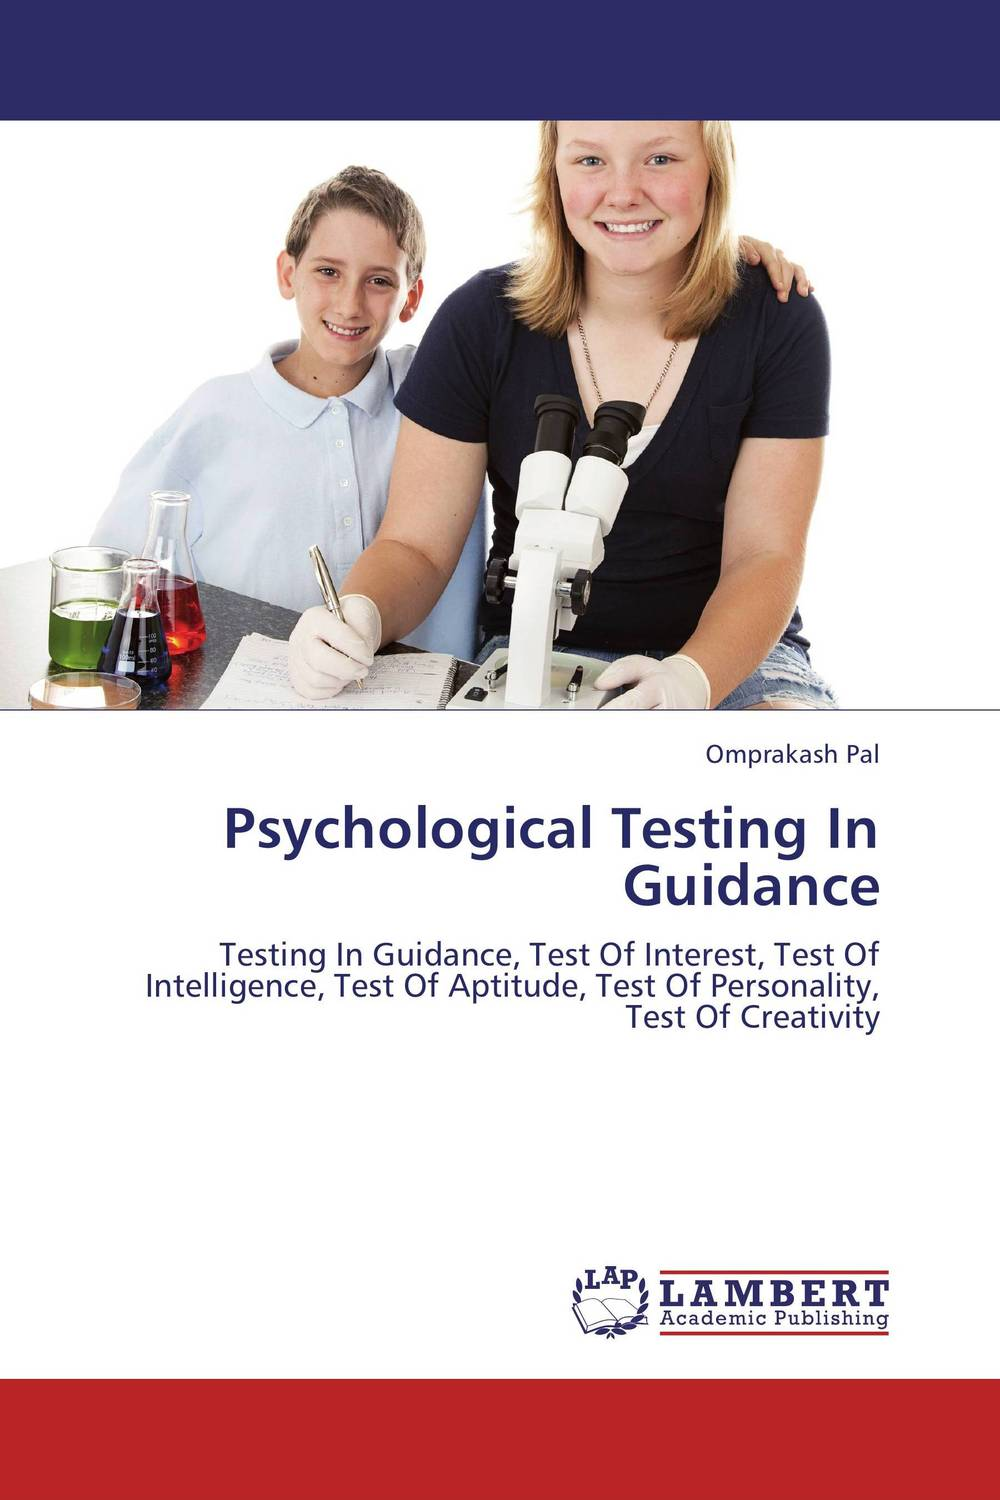 Psychological Testing In Guidance epilepsy in children psychological concerns